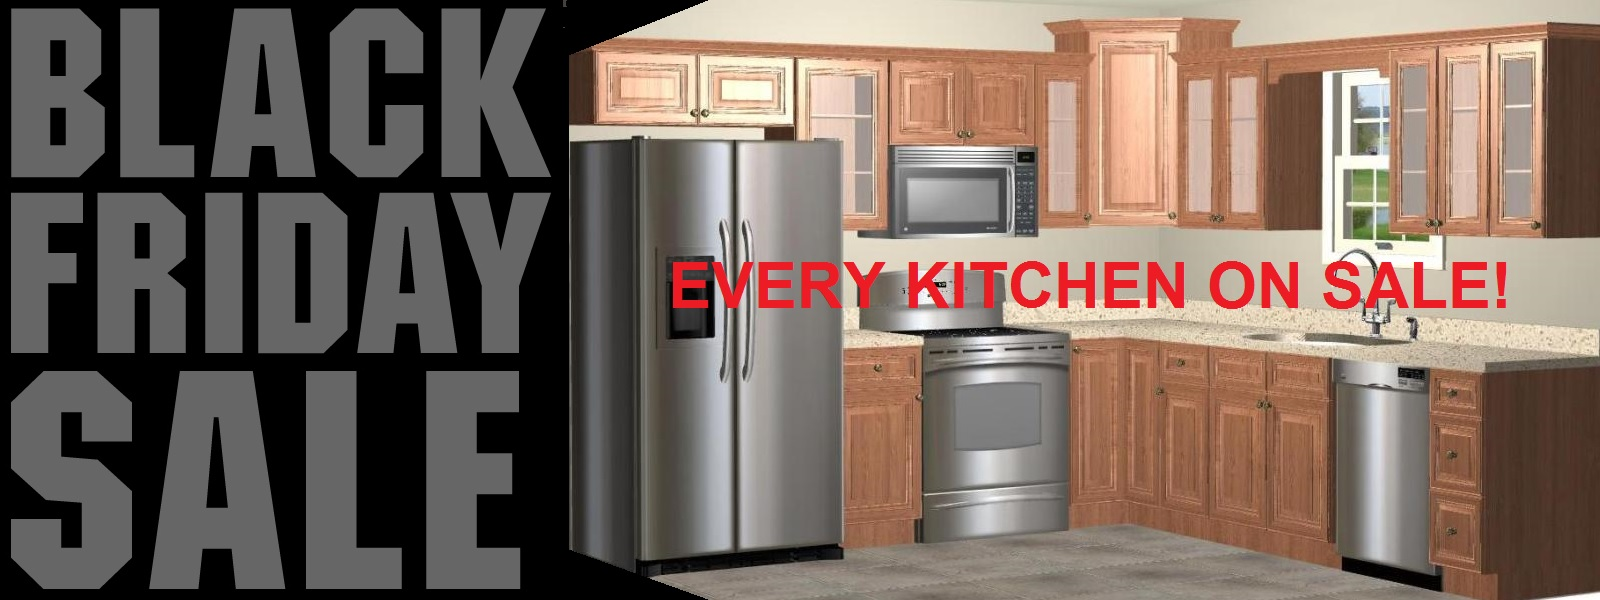 Complete Kitchen Remodeling Packages Under $10000